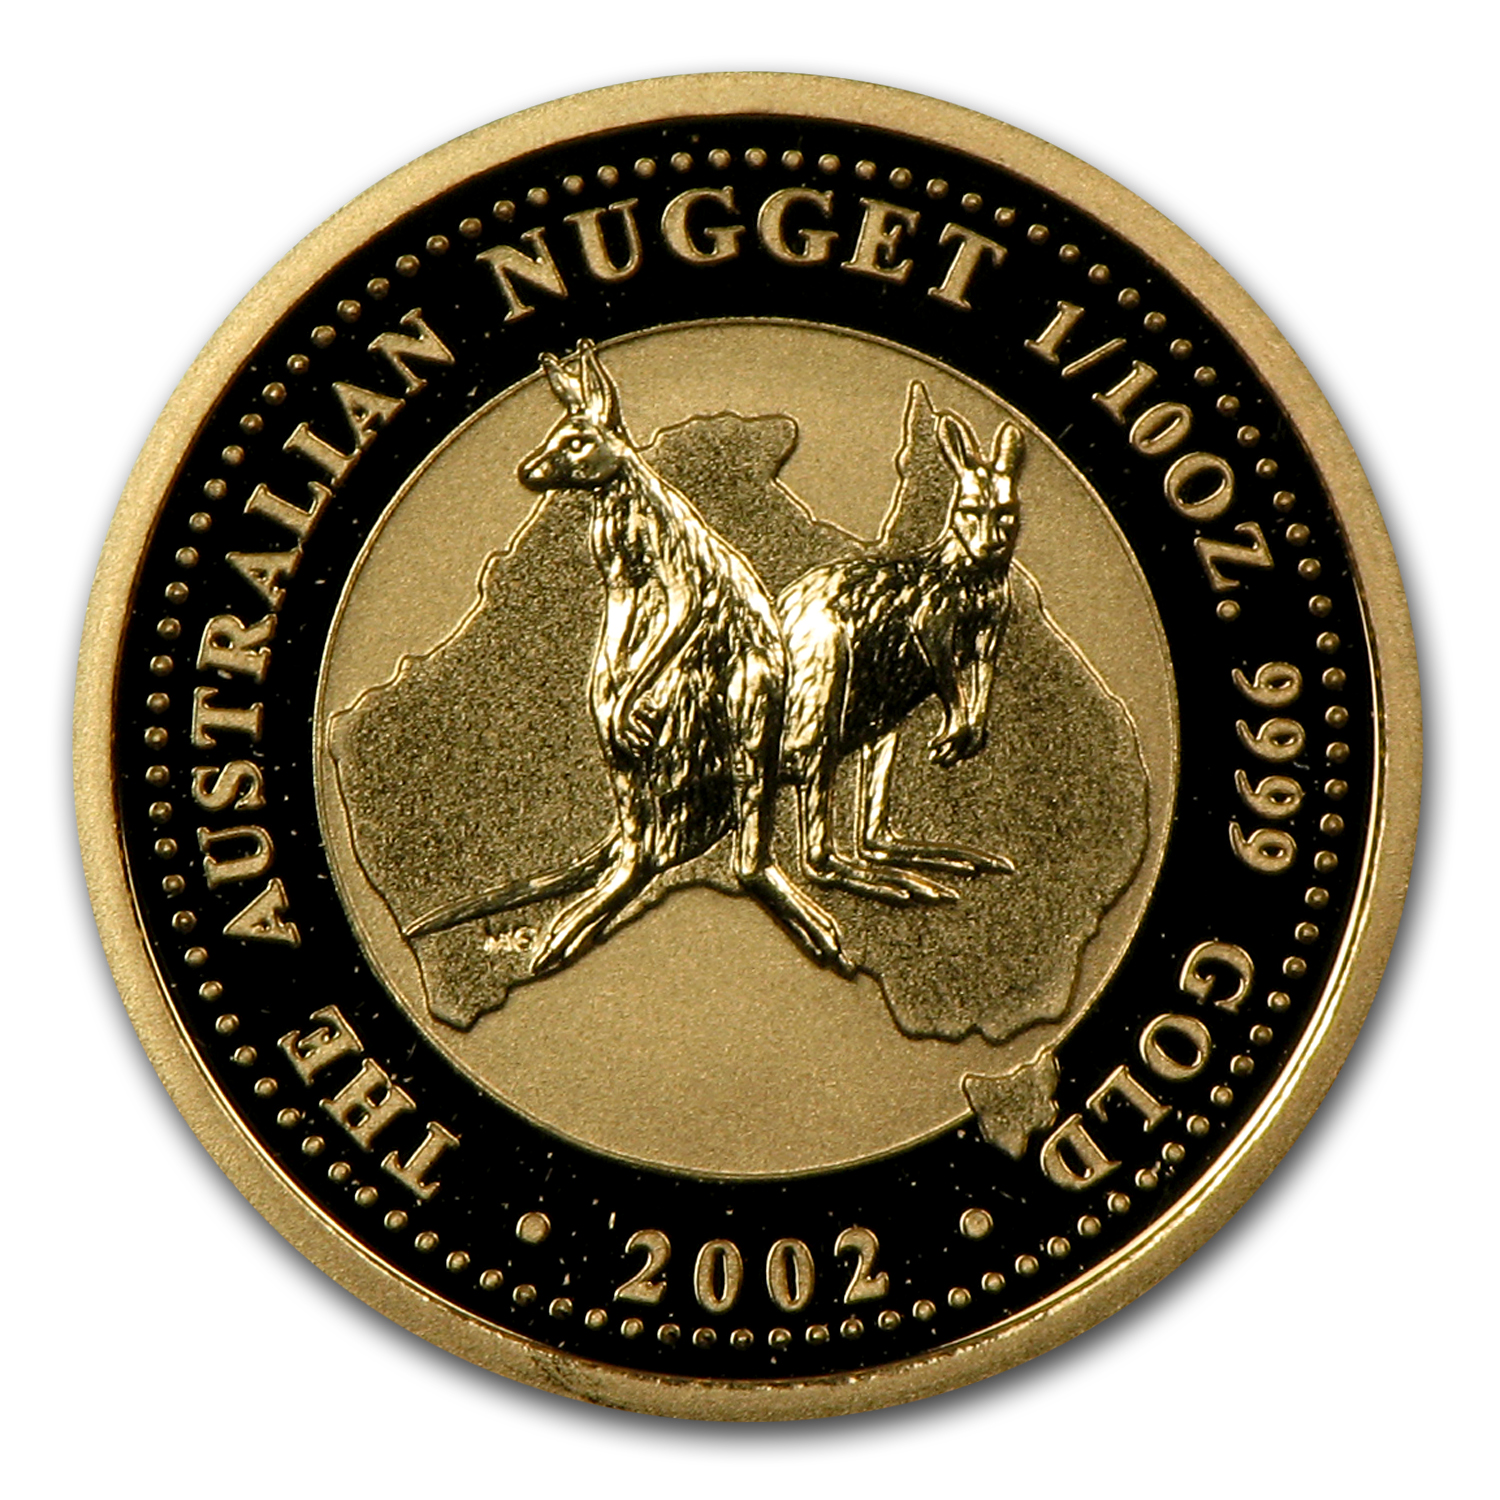 2002 1/10 oz Gold Australian Nugget